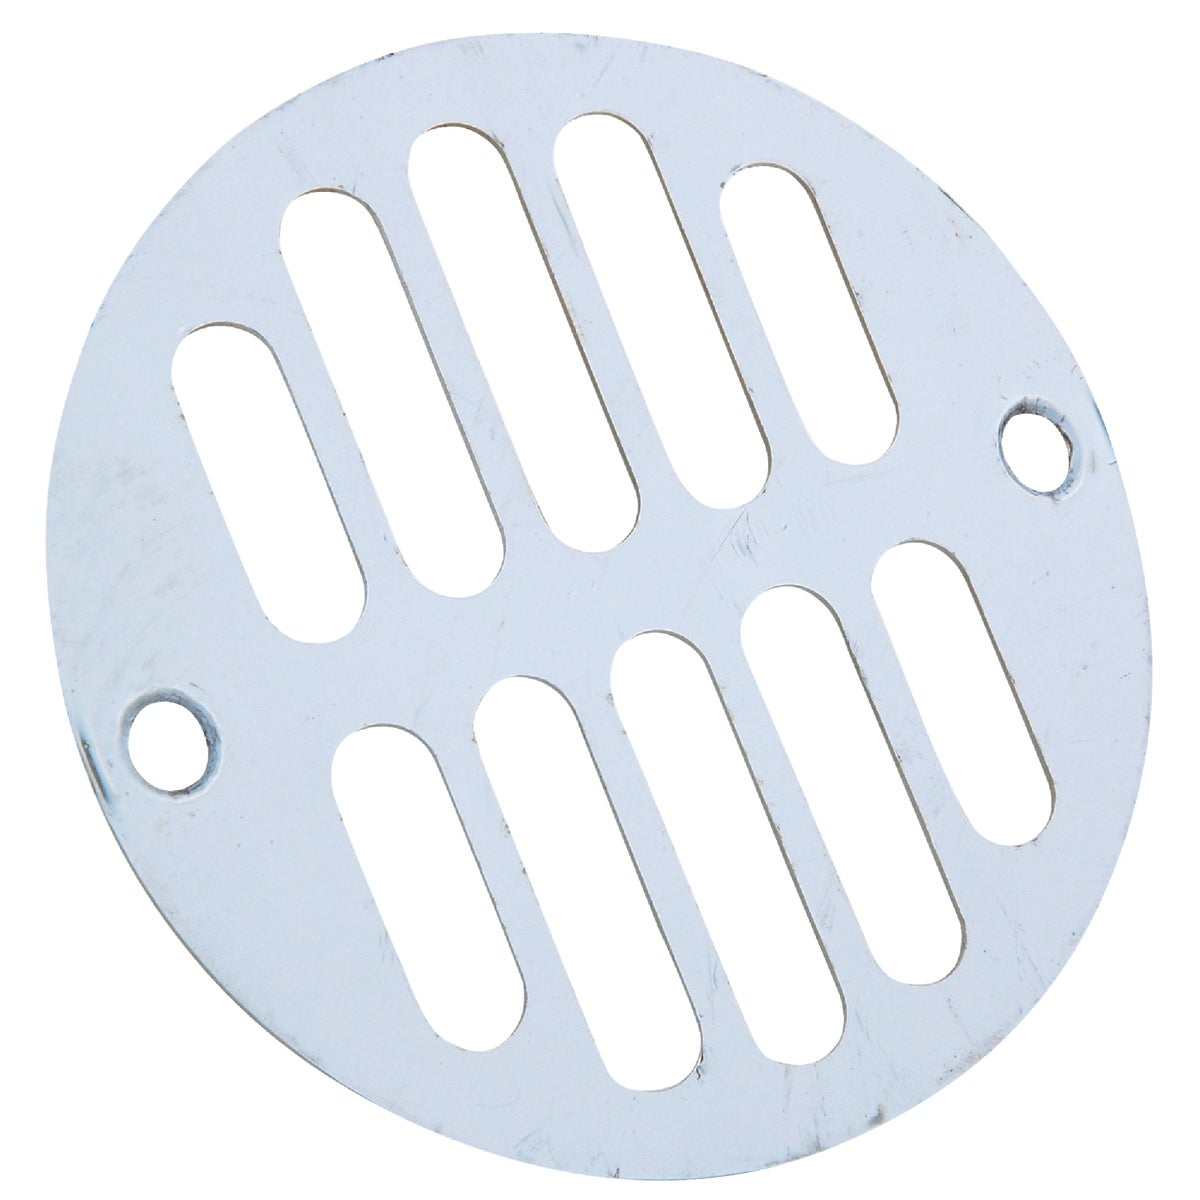 SHOWER DRAIN GRILL - 489913 by Do it Best